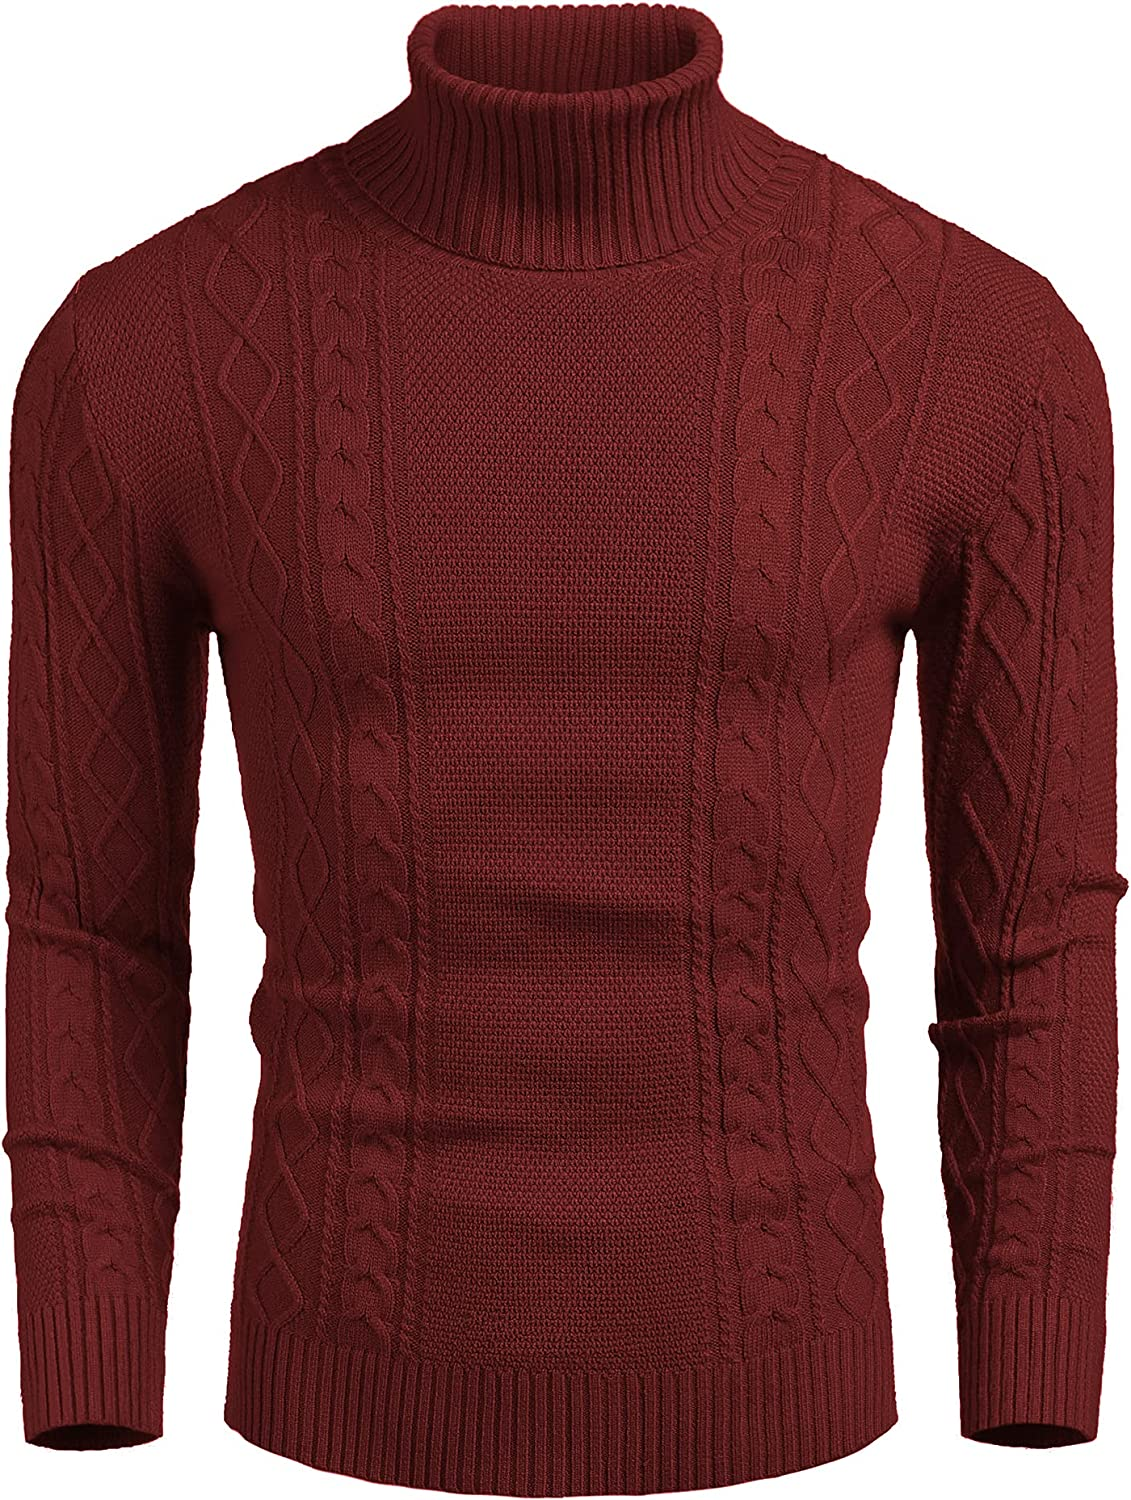 COOFANDY Men's New Beauty products popularity Thermal Turtleneck Sweater Fit Cable Casual Slim